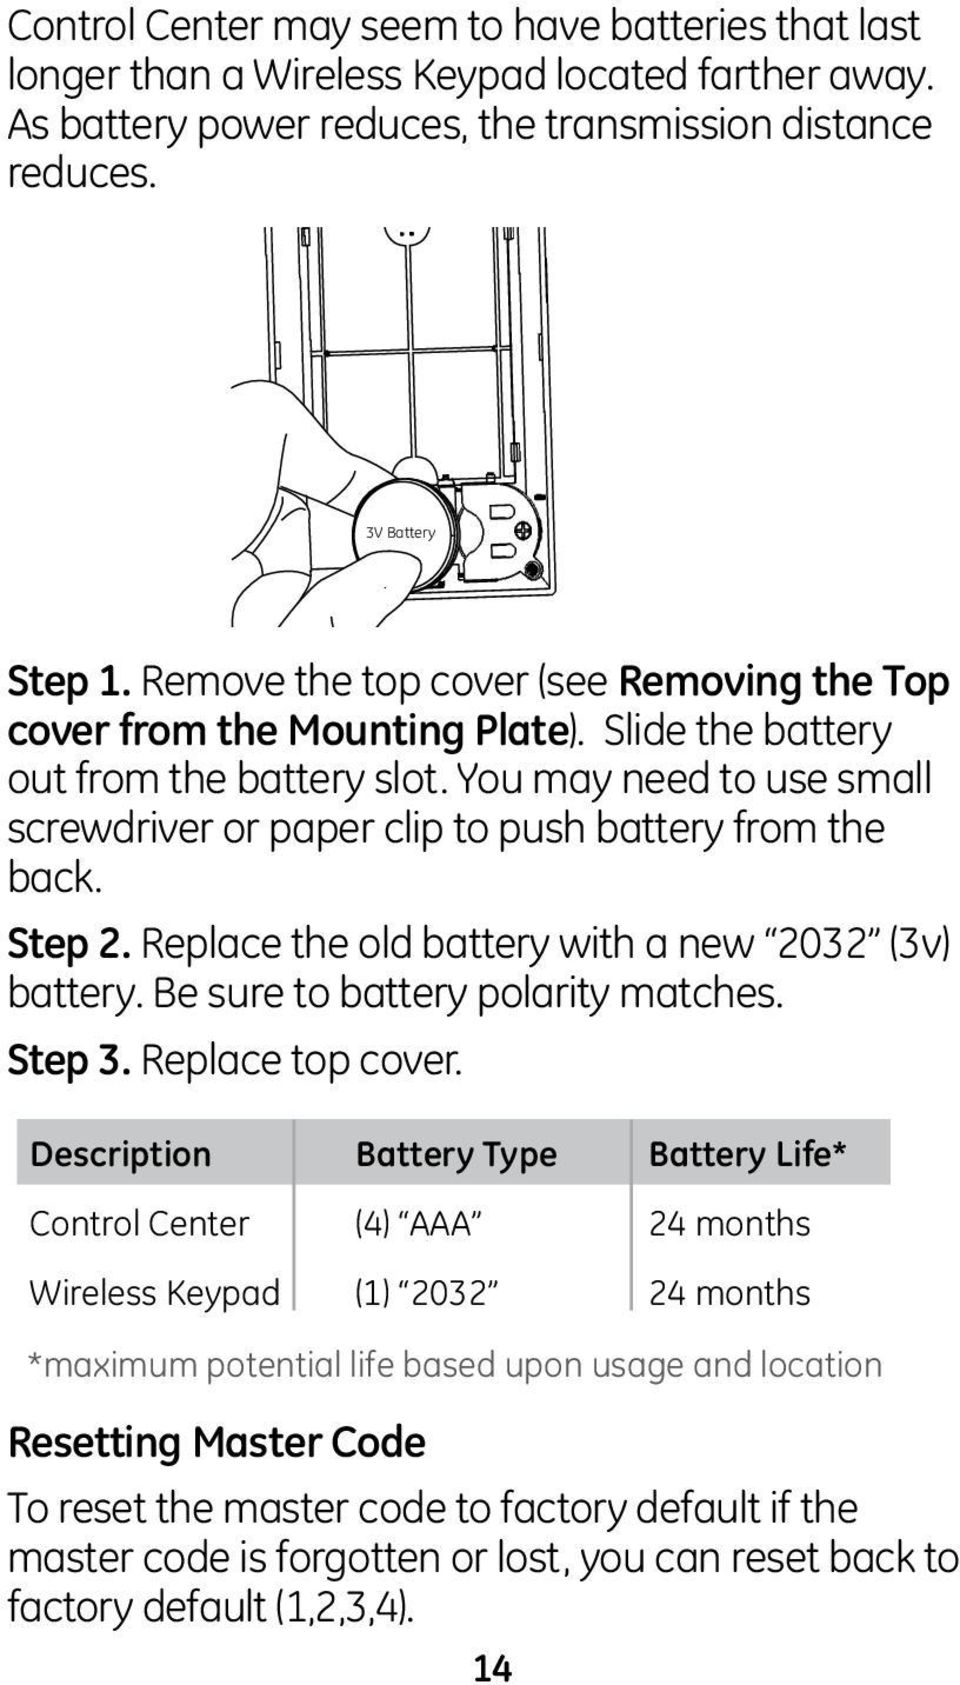 You may need to use small screwdriver or paper clip to push battery from the back. Step 2. Replace the old battery with a new 2032 (3v) battery. Be sure to battery polarity matches. Step 3.